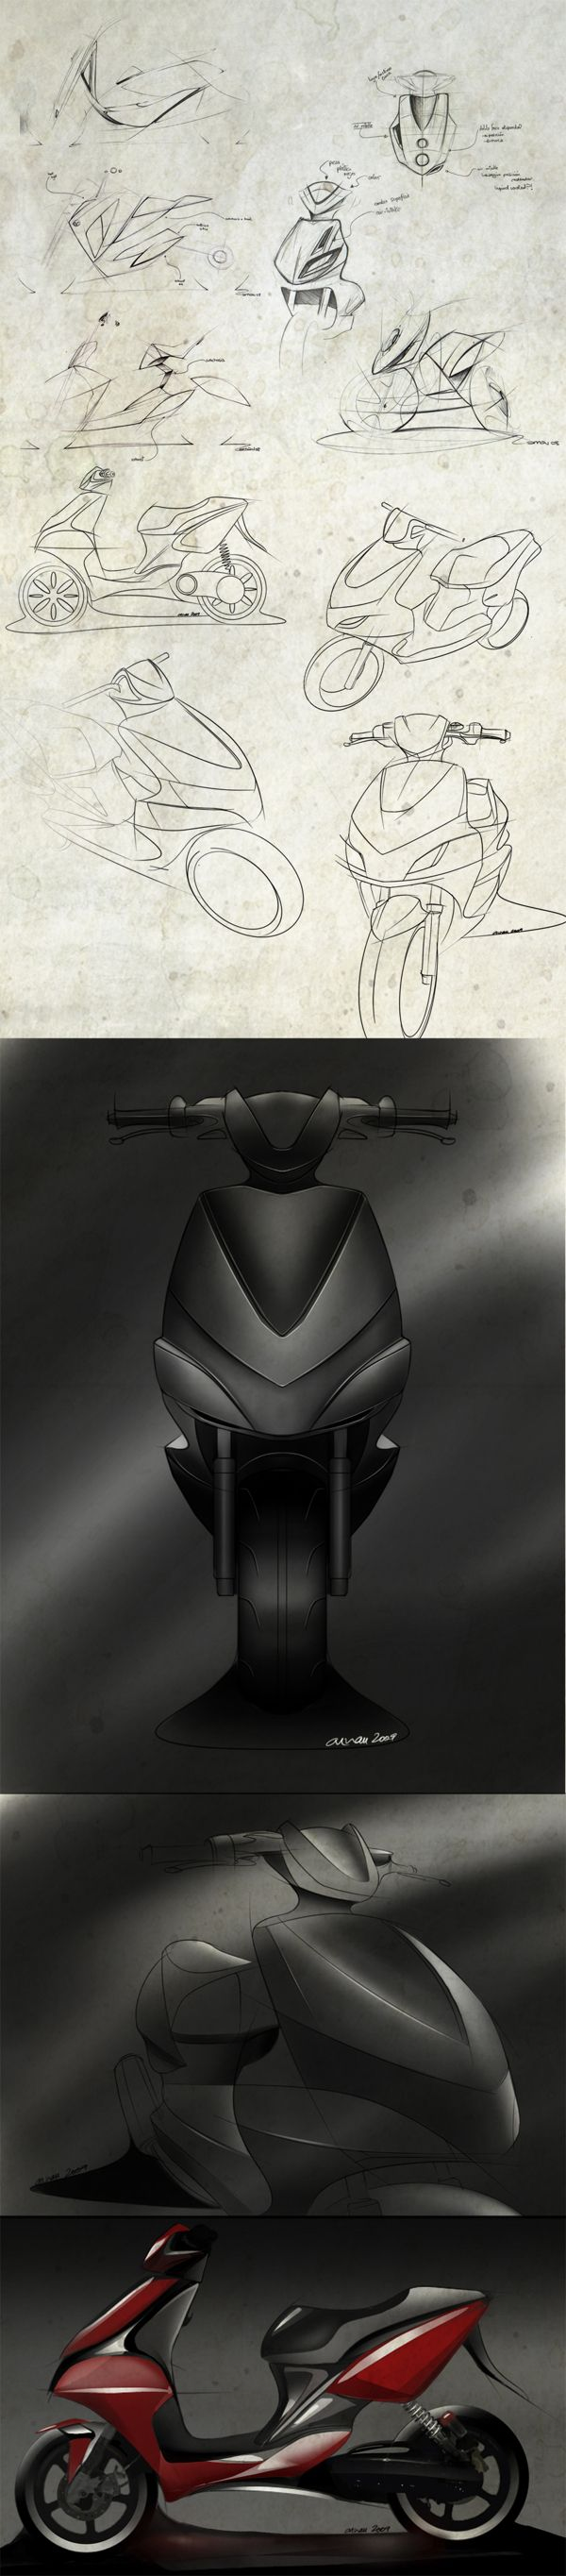 http://www.behance.net/gallery/V-Moto-Concept-Motorcycles/4936151